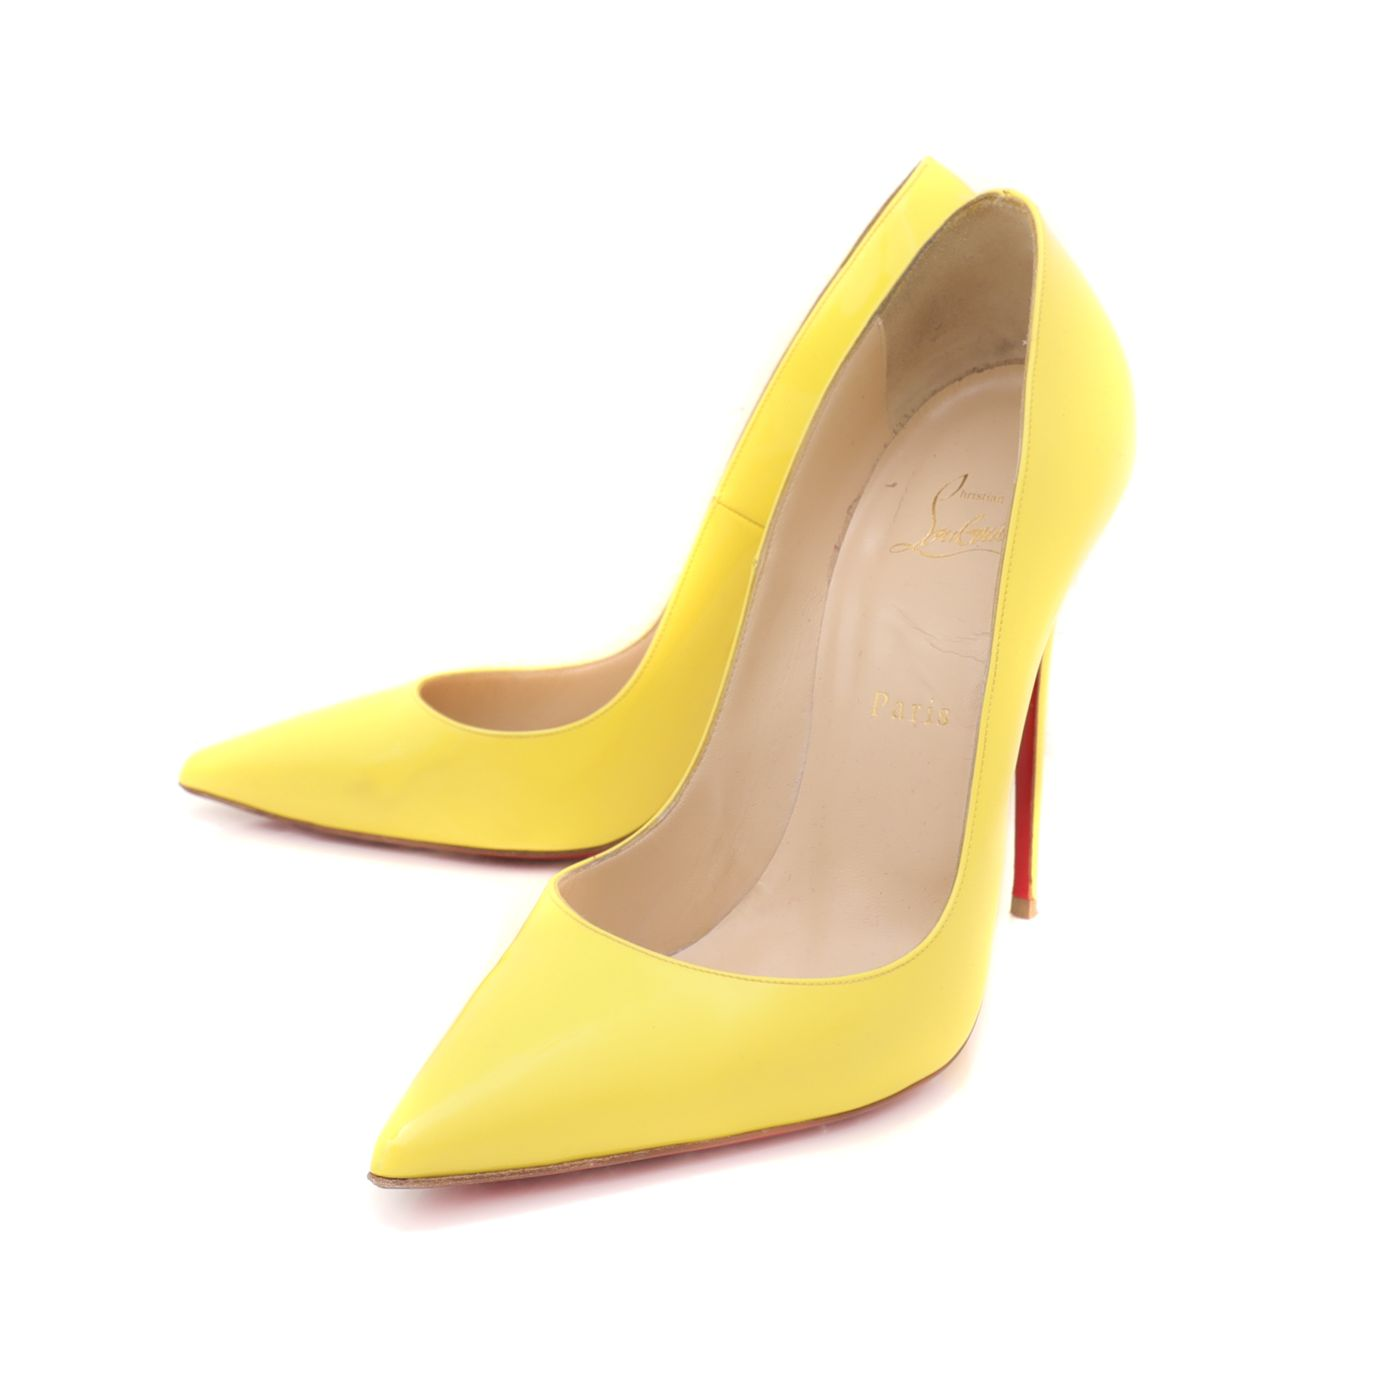 Christian Louboutin Yellow So Kate Pumps 41